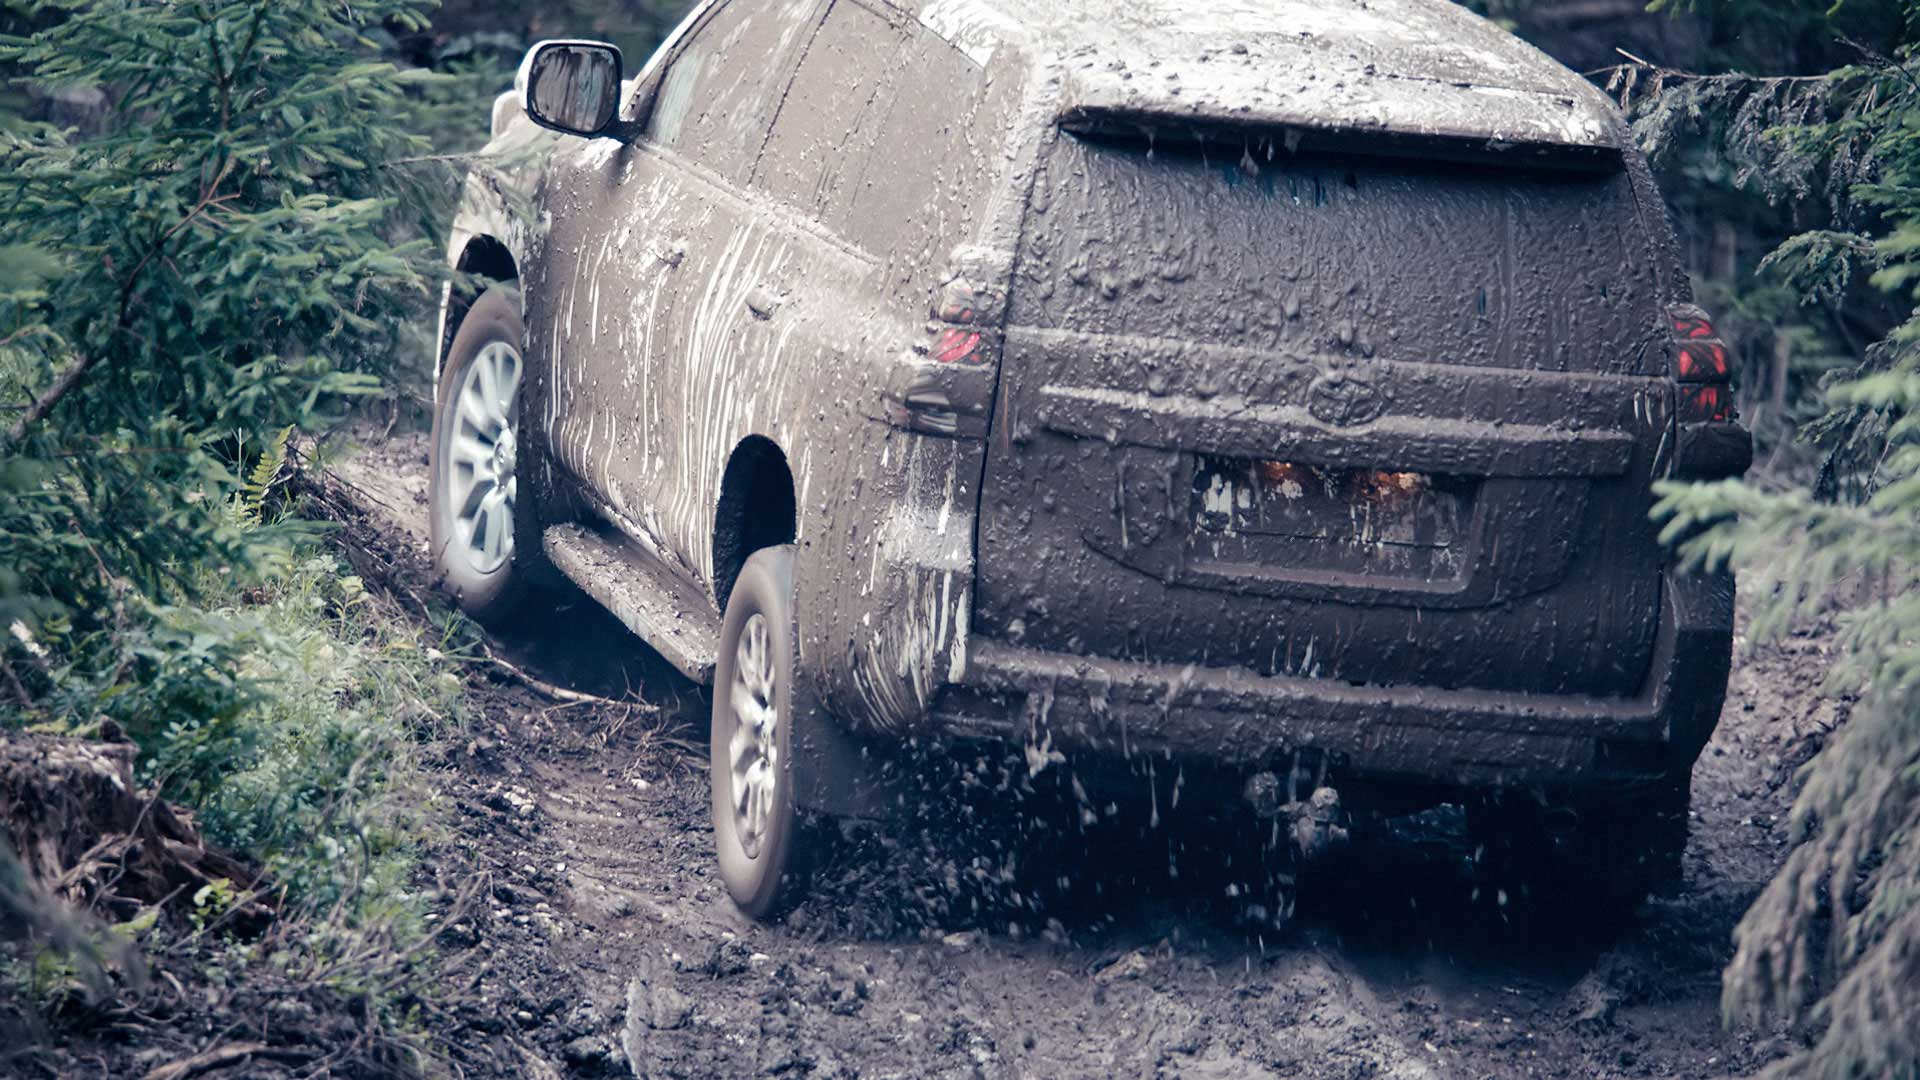 Covered with dirt. Still from Toyota Landcruiser.